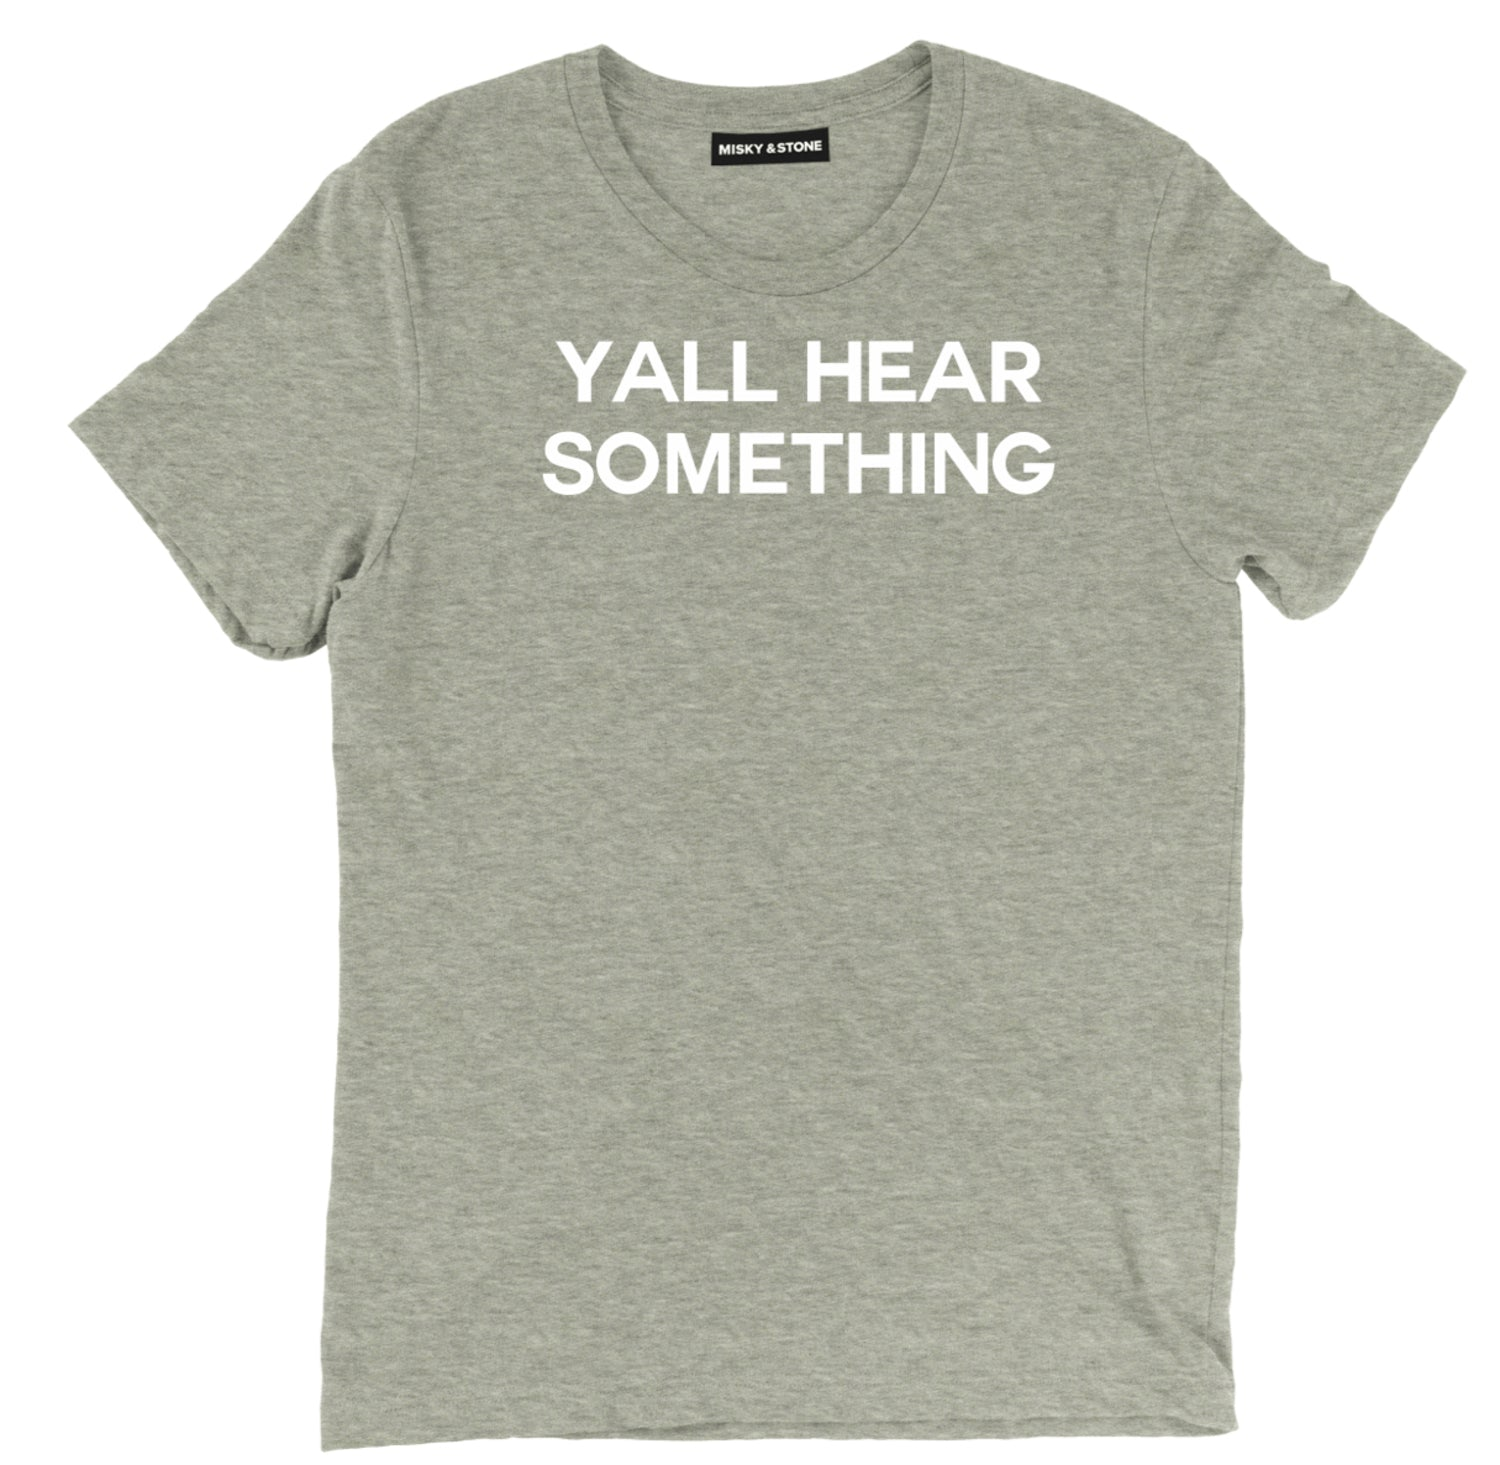 Yall Hear Something Funny Unisex Tee Shirt